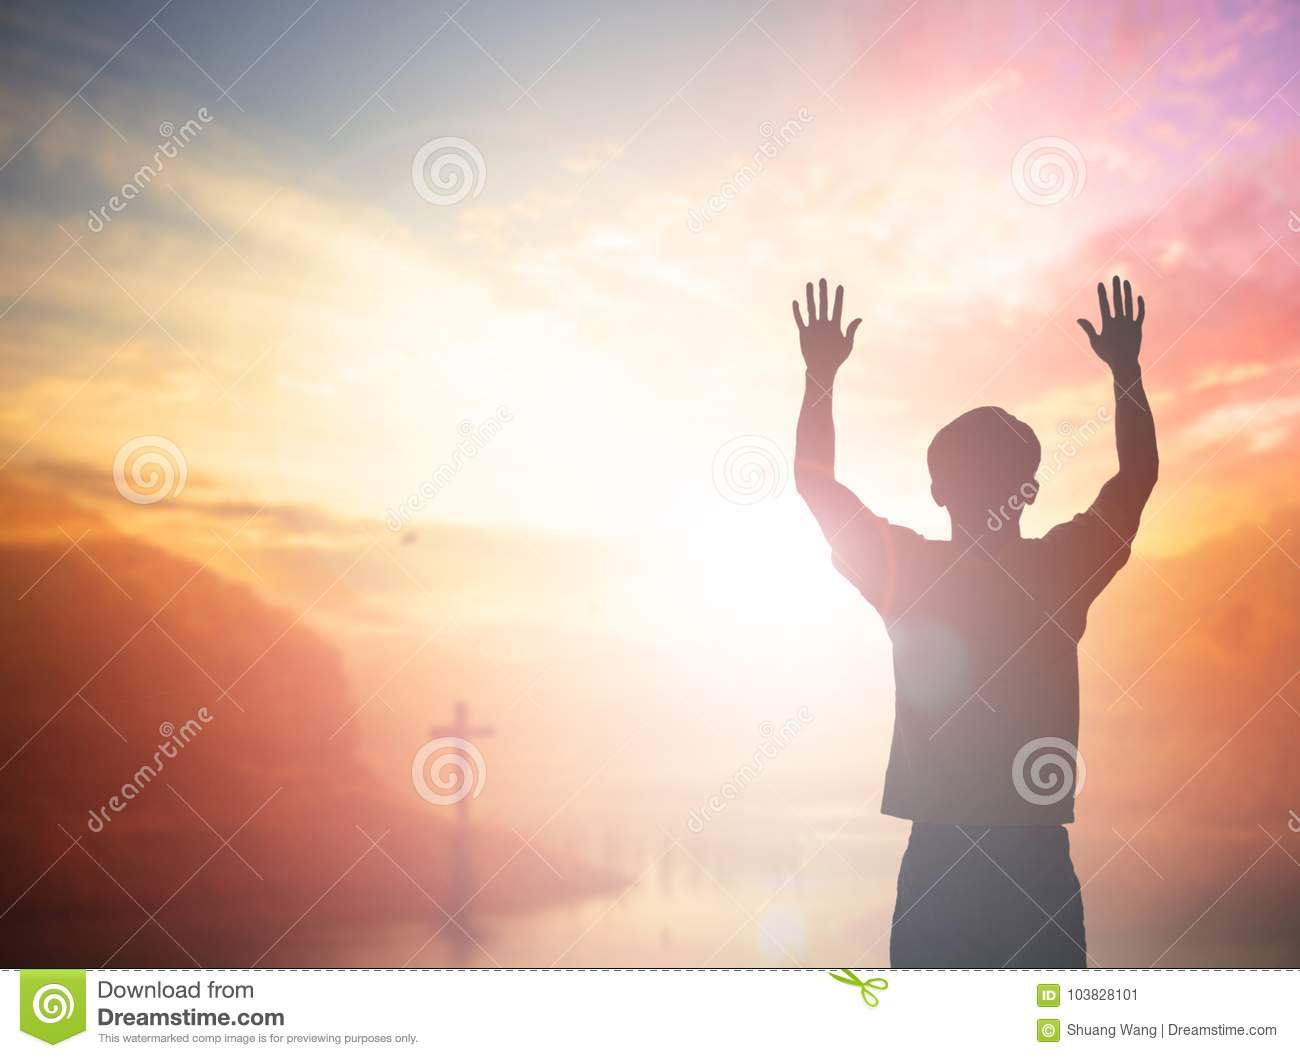 Silhouette freedom humble man rise hands up inspire good morning. Christian worship praise God in thanksgiving day Prayer Financia